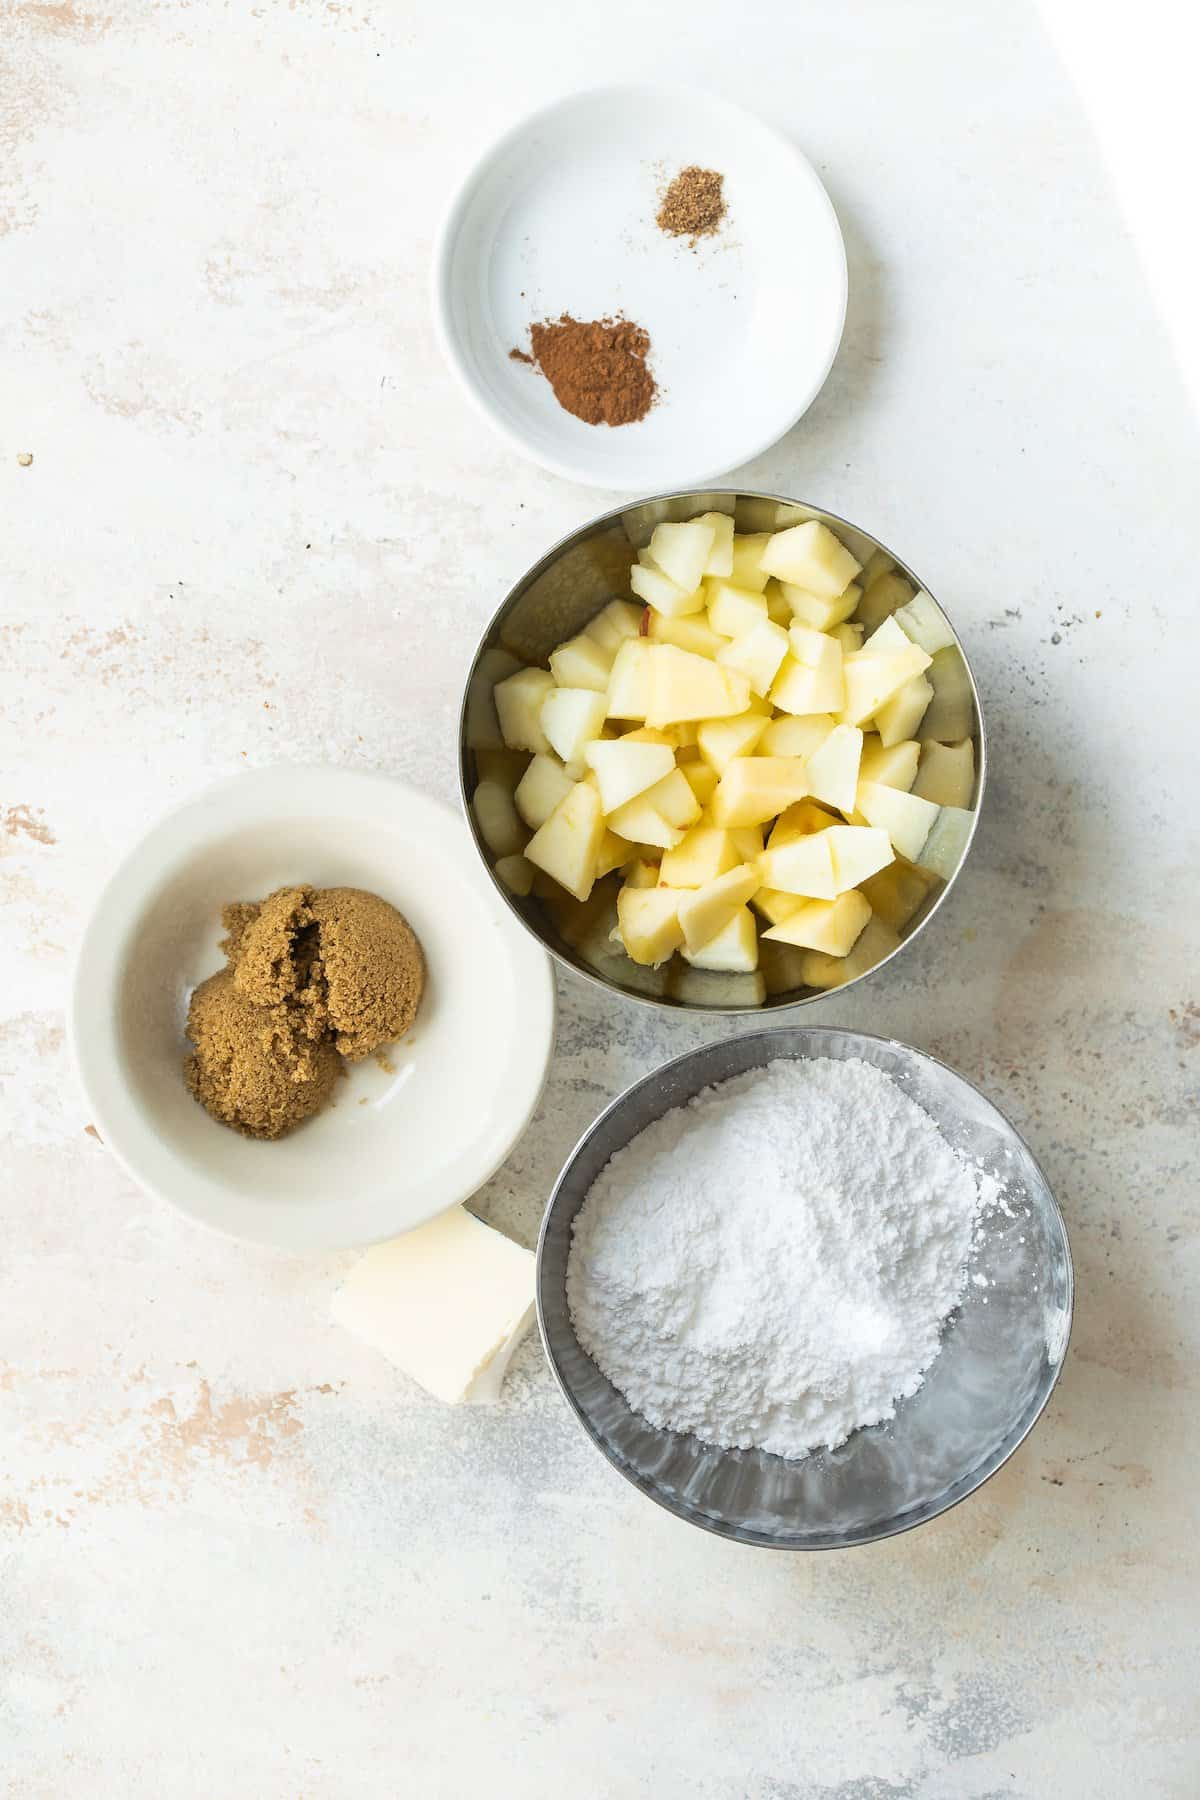 Ingredients for fried apples.